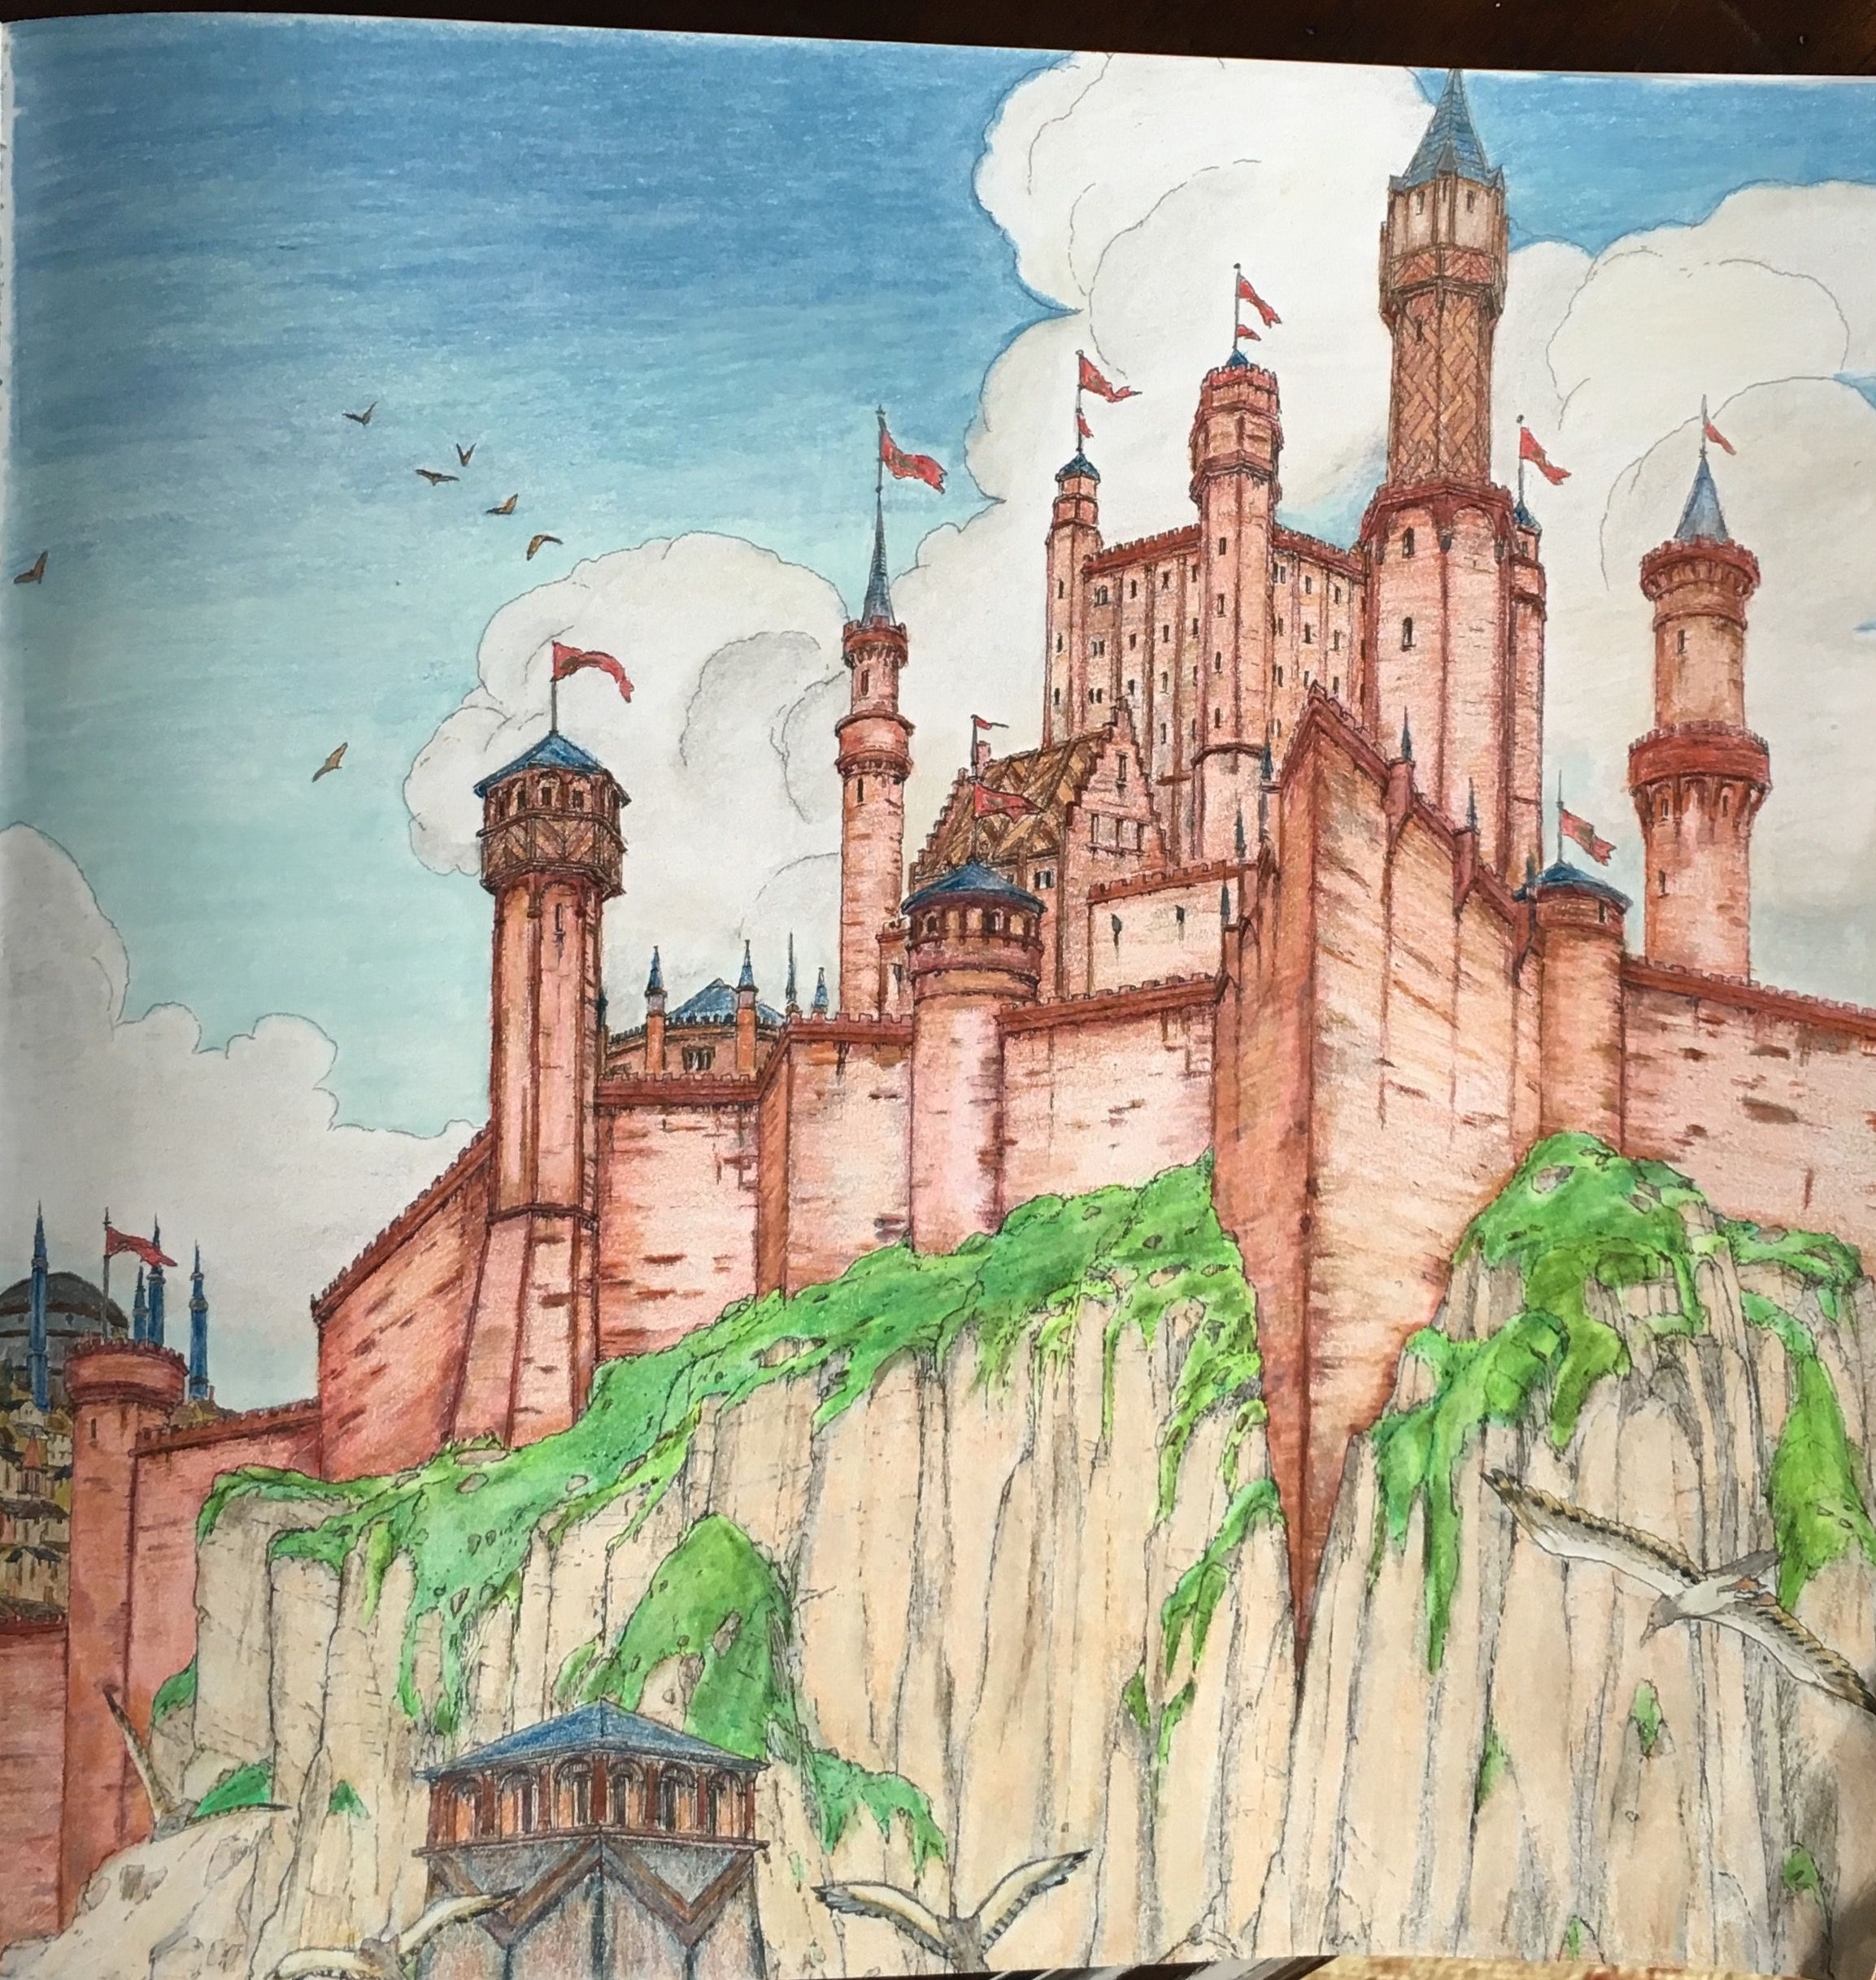 Adult coloring book game of thrones - The Red Keep From The Game Of Thrones Coloring Book